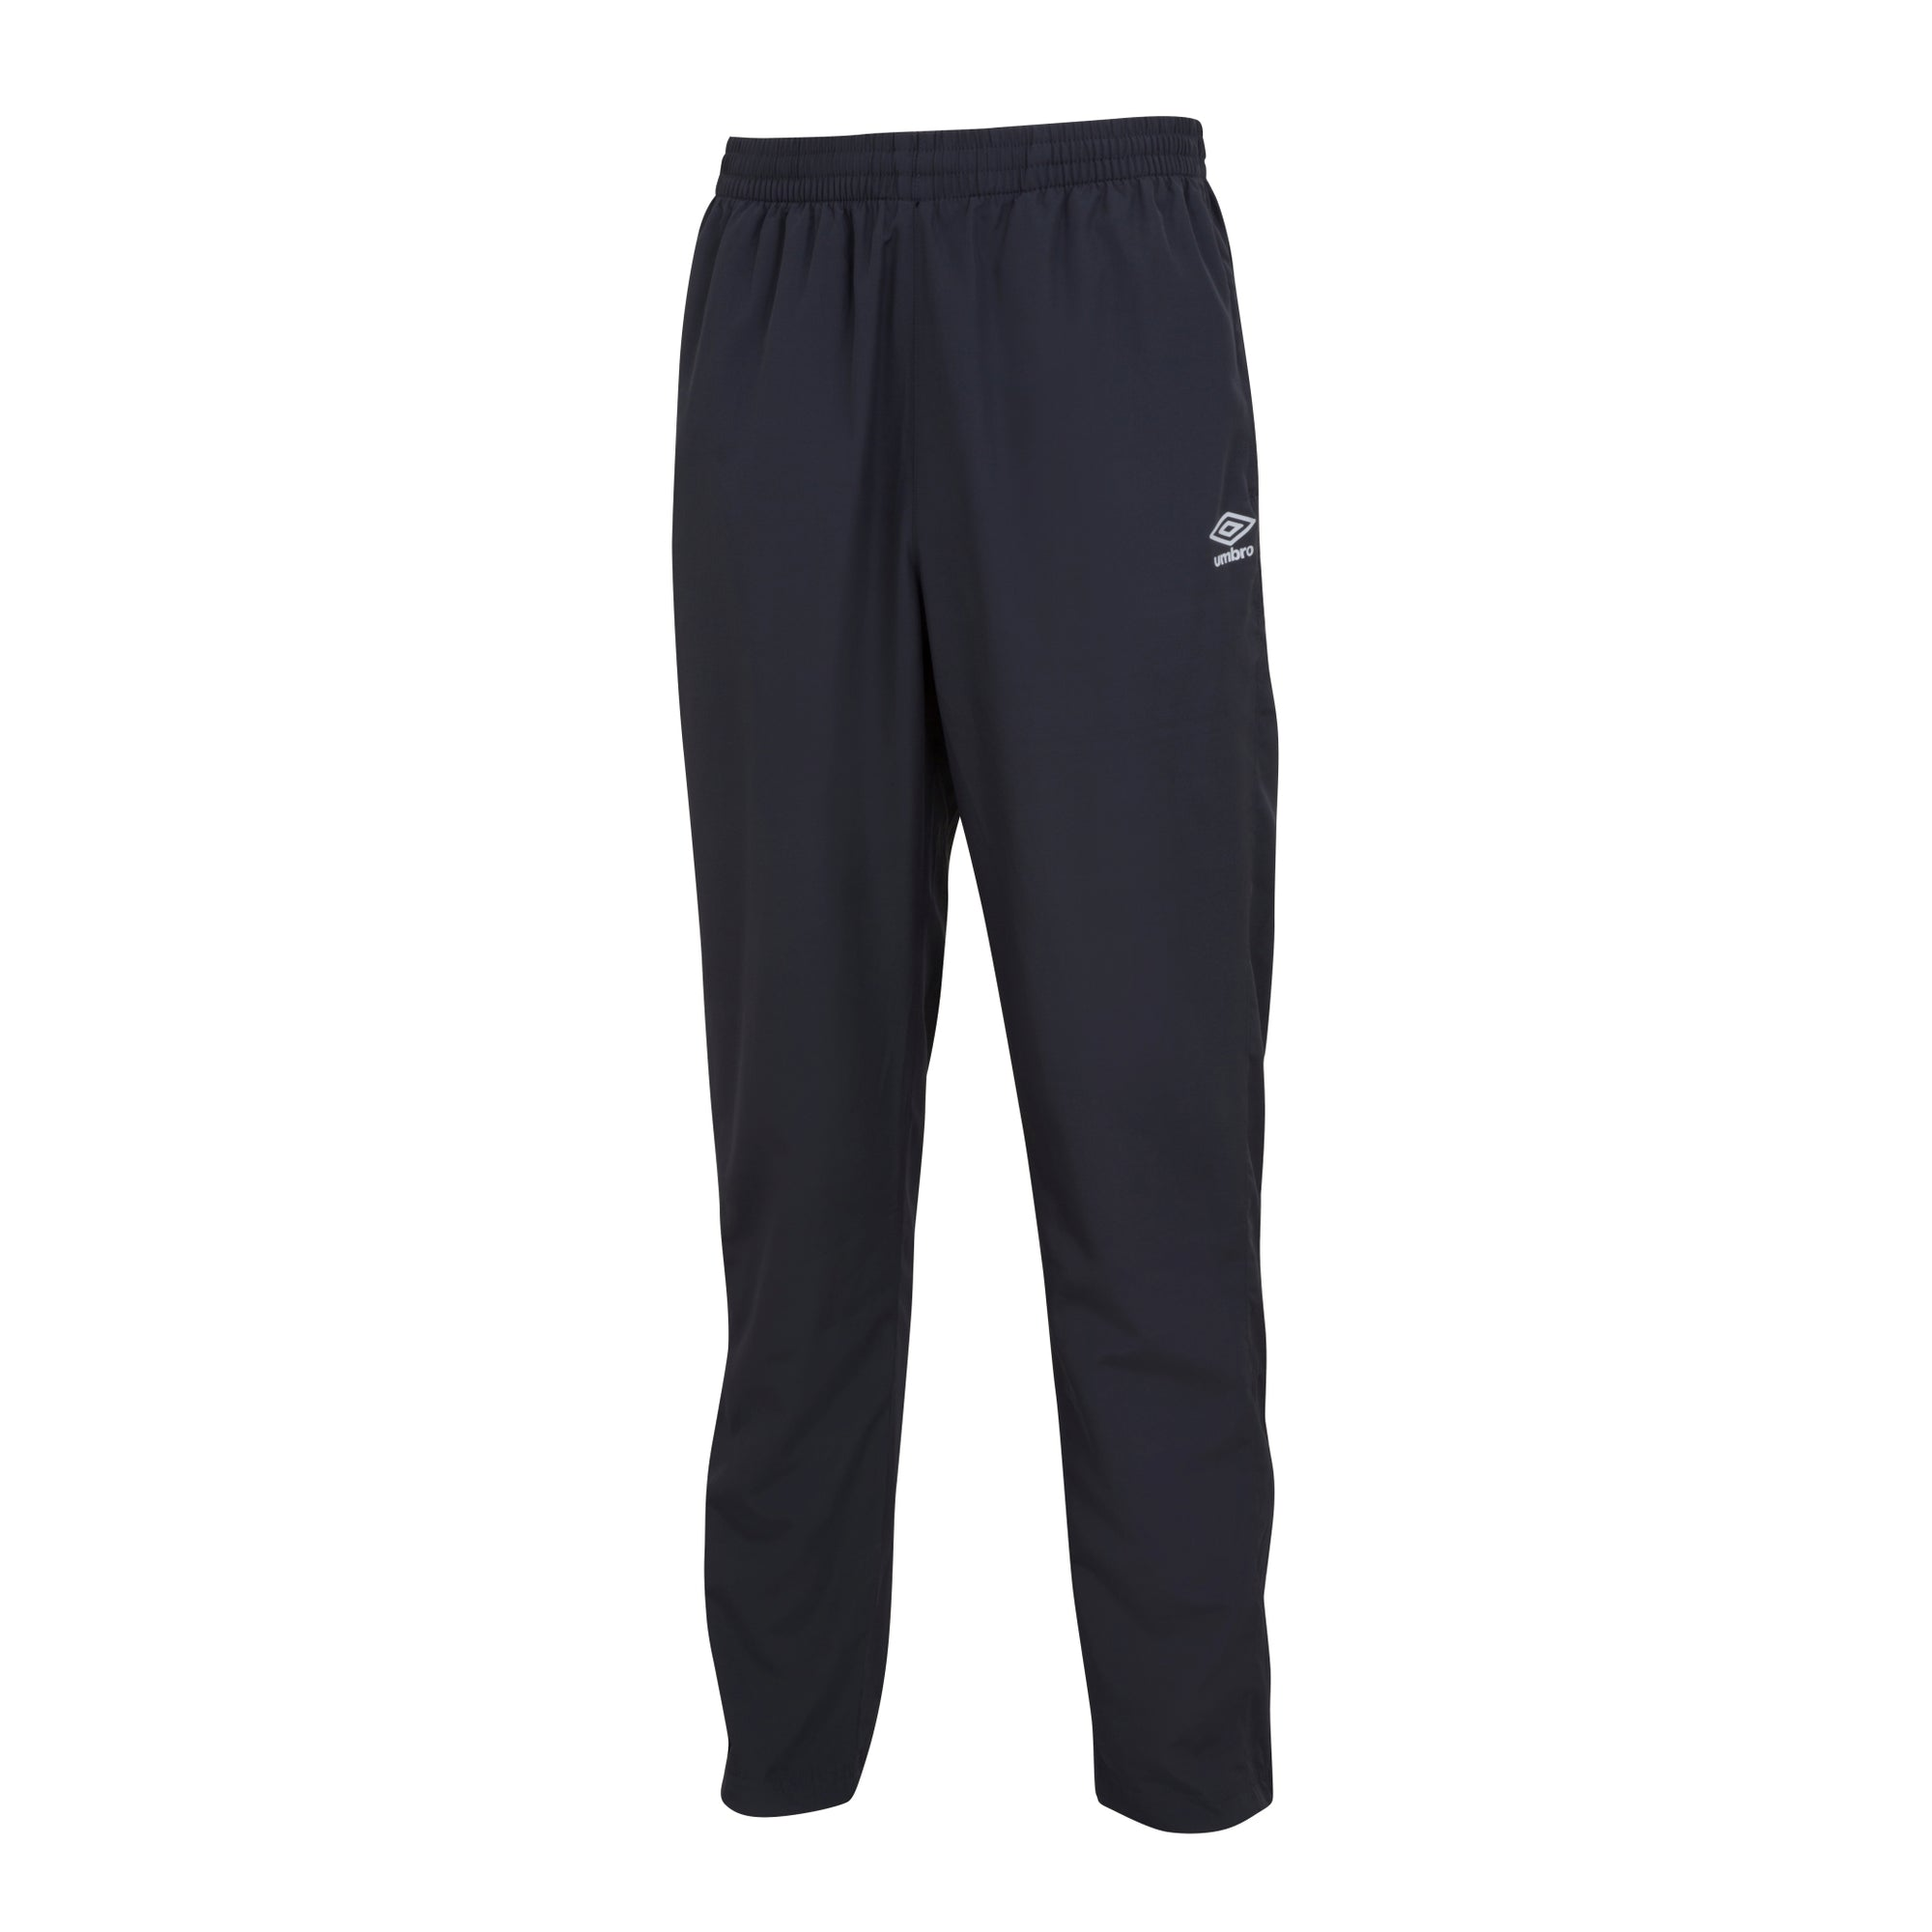 14a854b9f63e Umbro Woven Pant - Black - footballkitsdirect.com